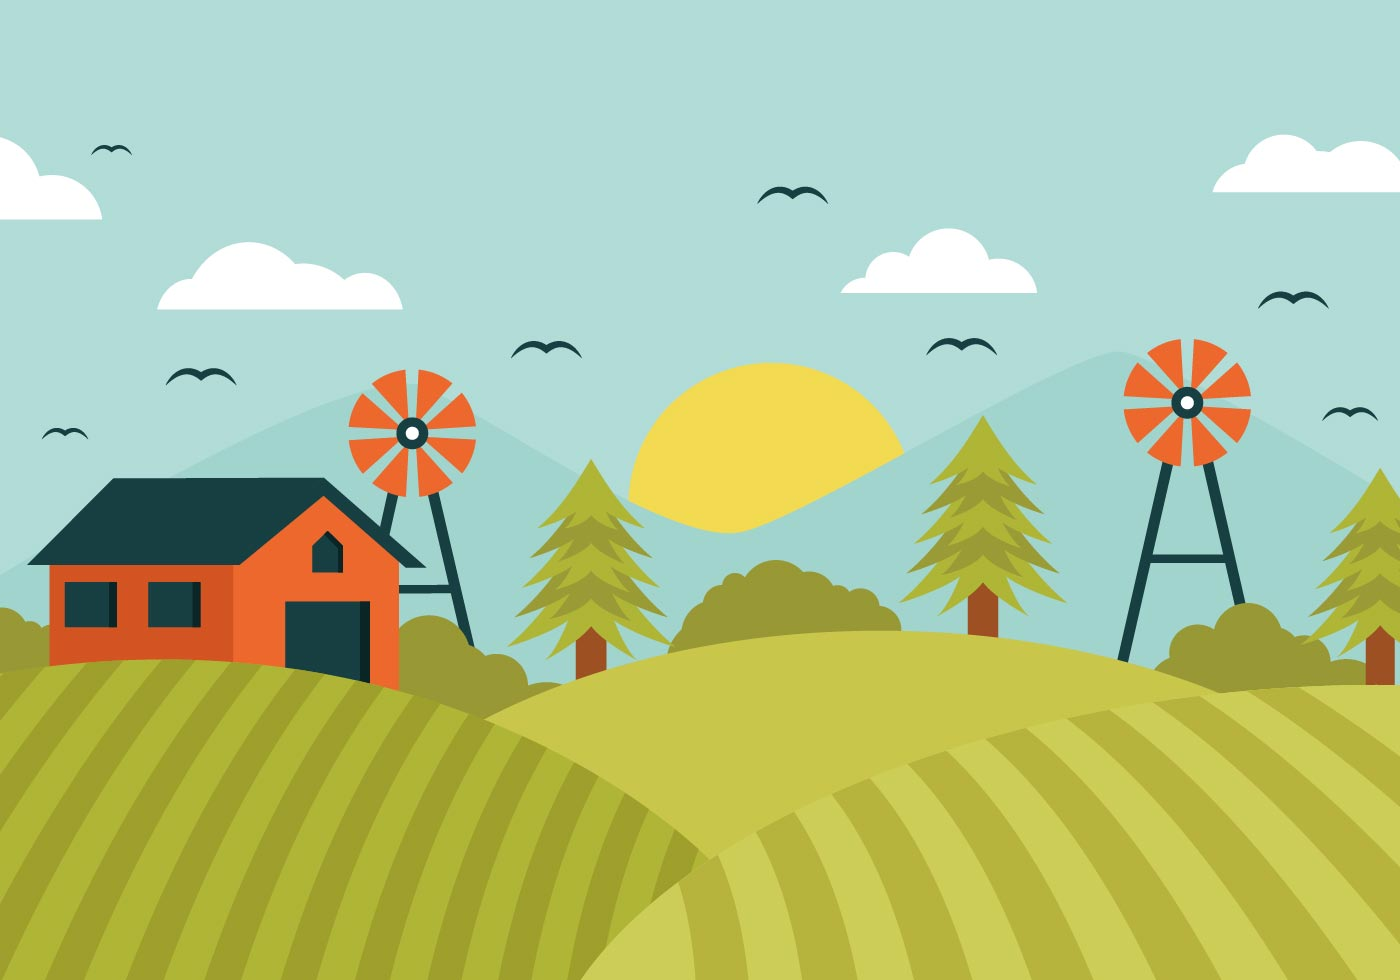 Barn on hill clipart picture stock Farm Free Vector Art - (30,450 Free Downloads) picture stock